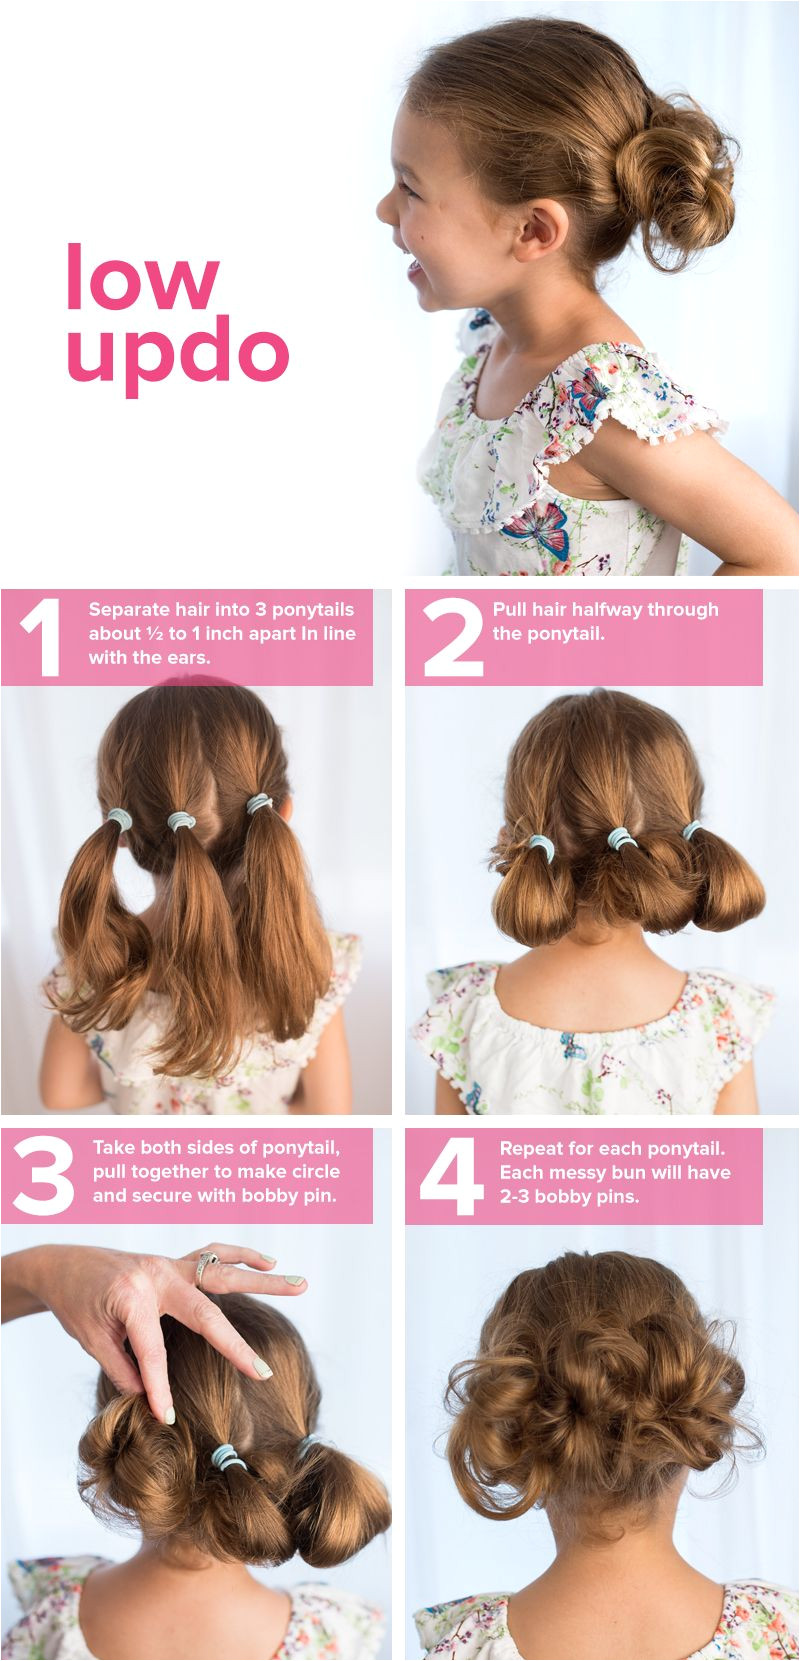 Hairstyles for A School formal 5 Fast Easy Cute Hairstyles for Girls Back to School